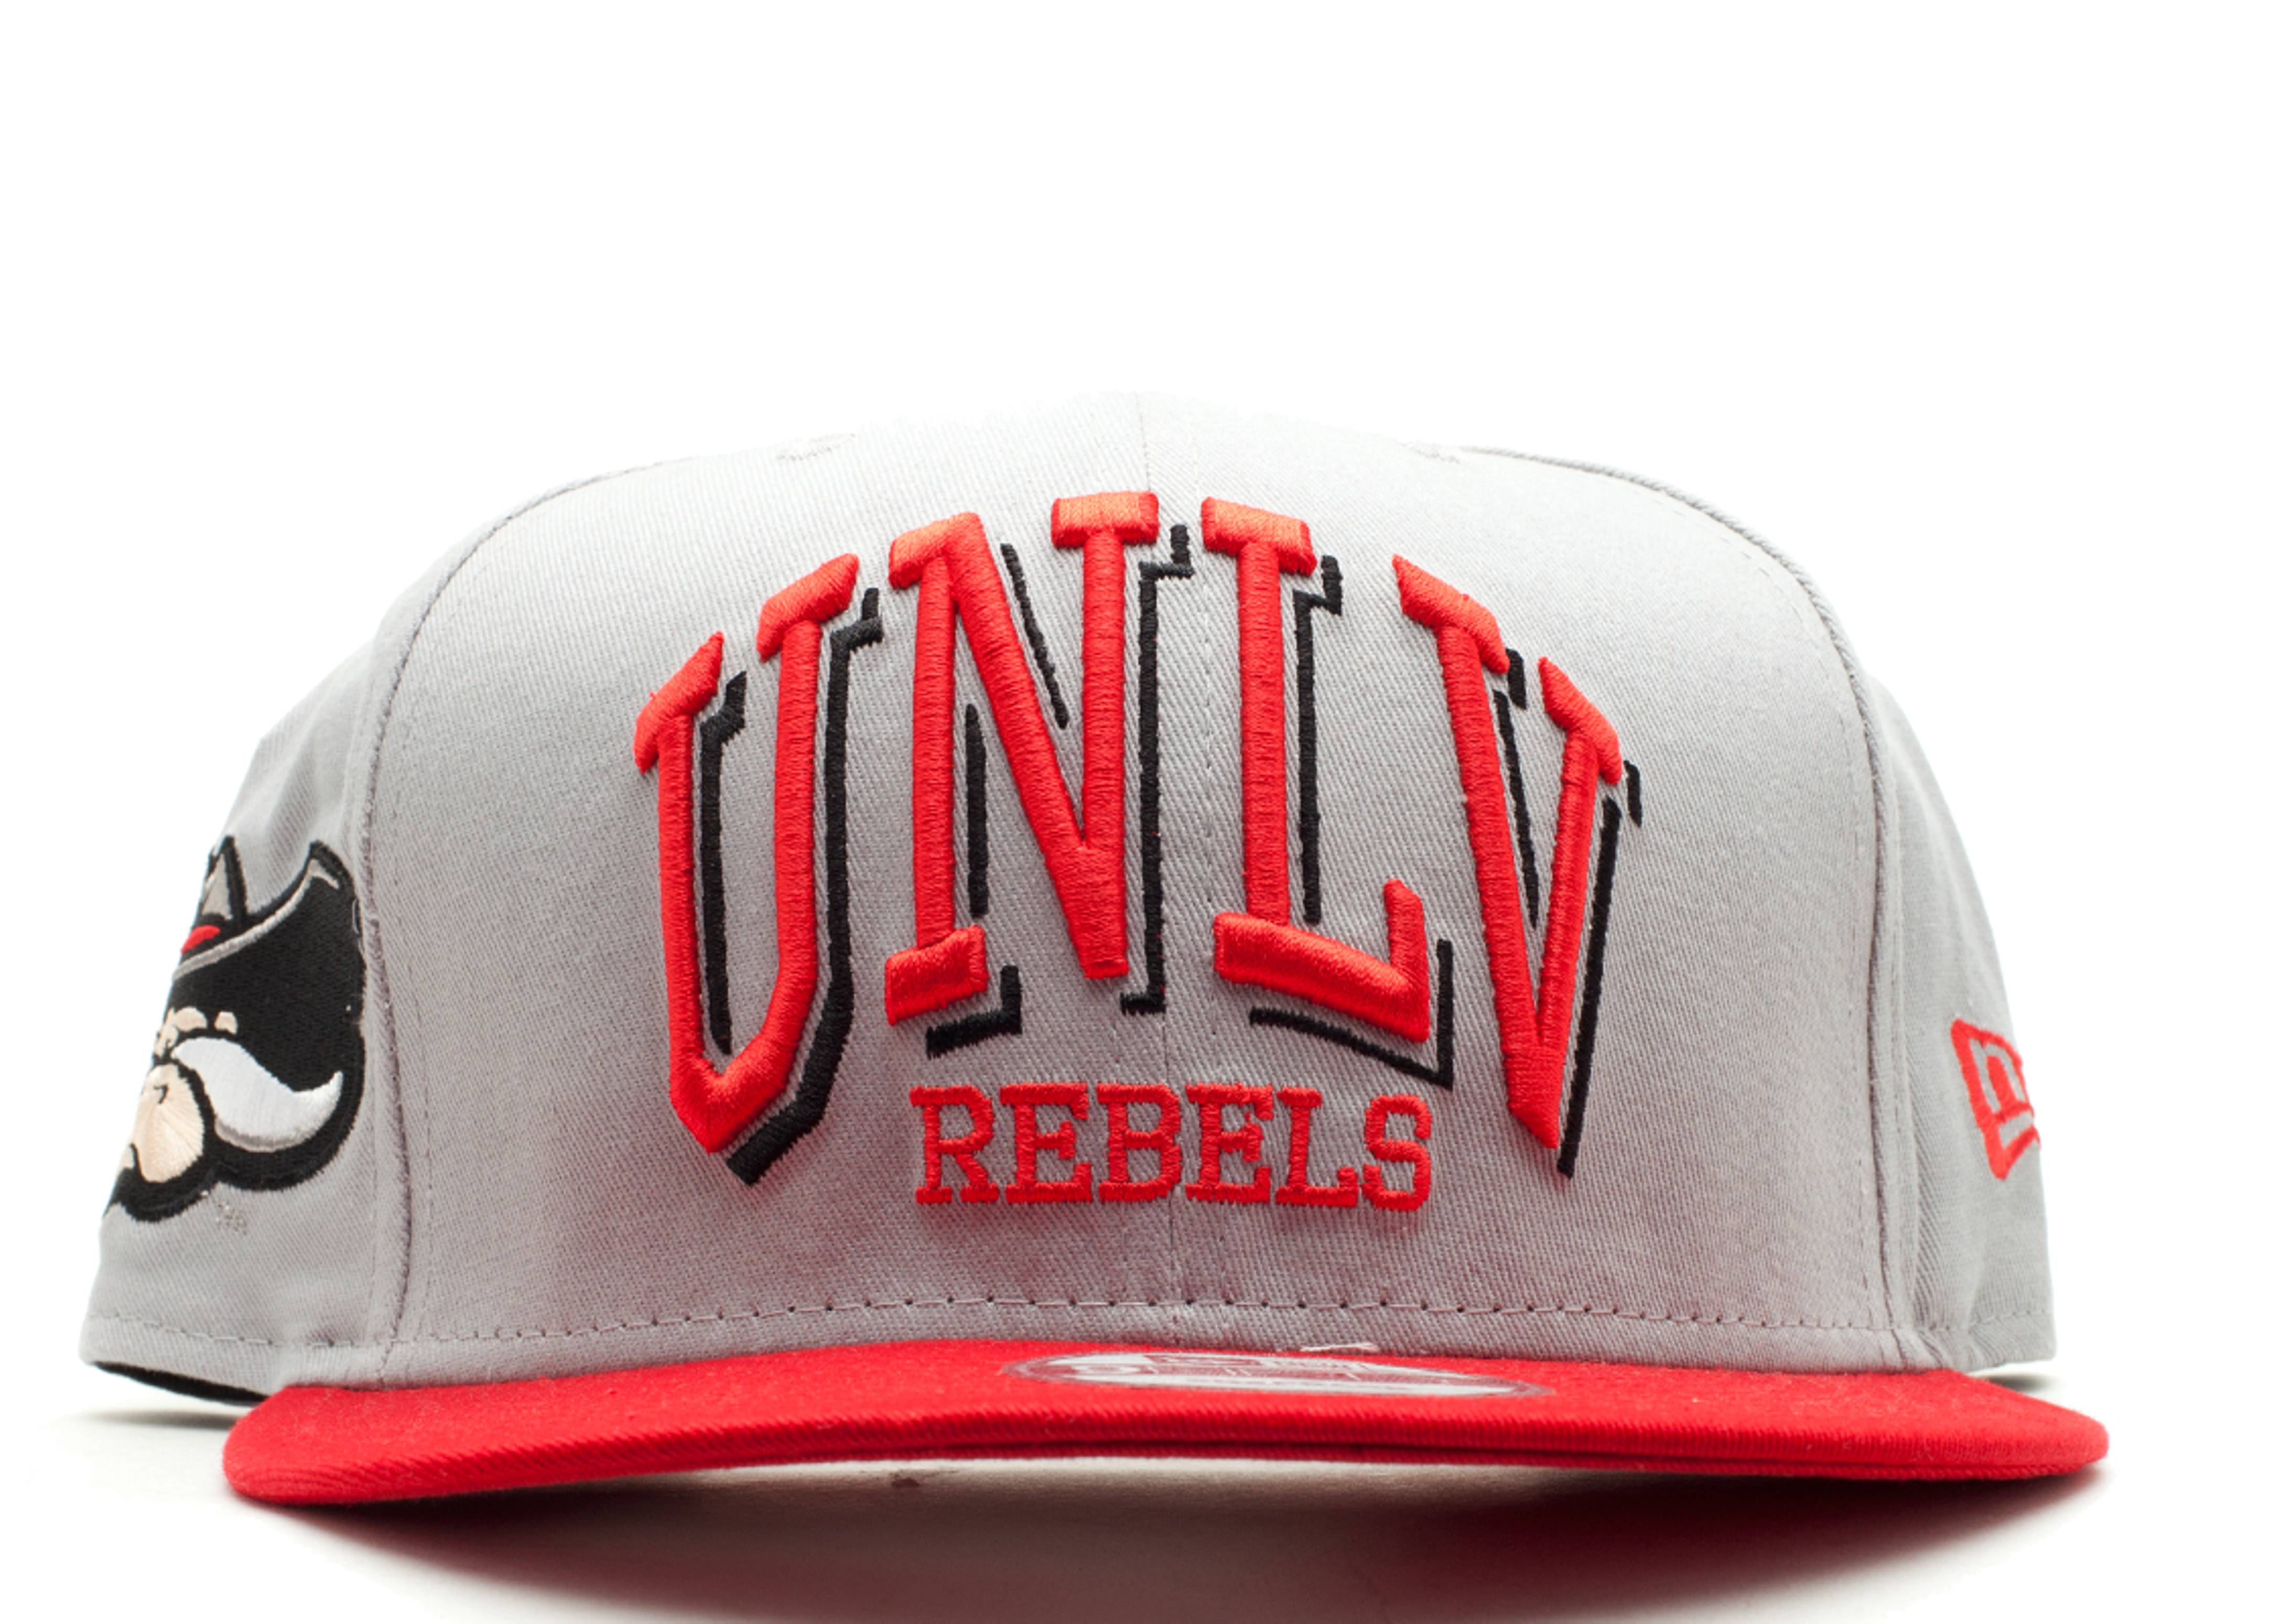 nevada rebels snap-back